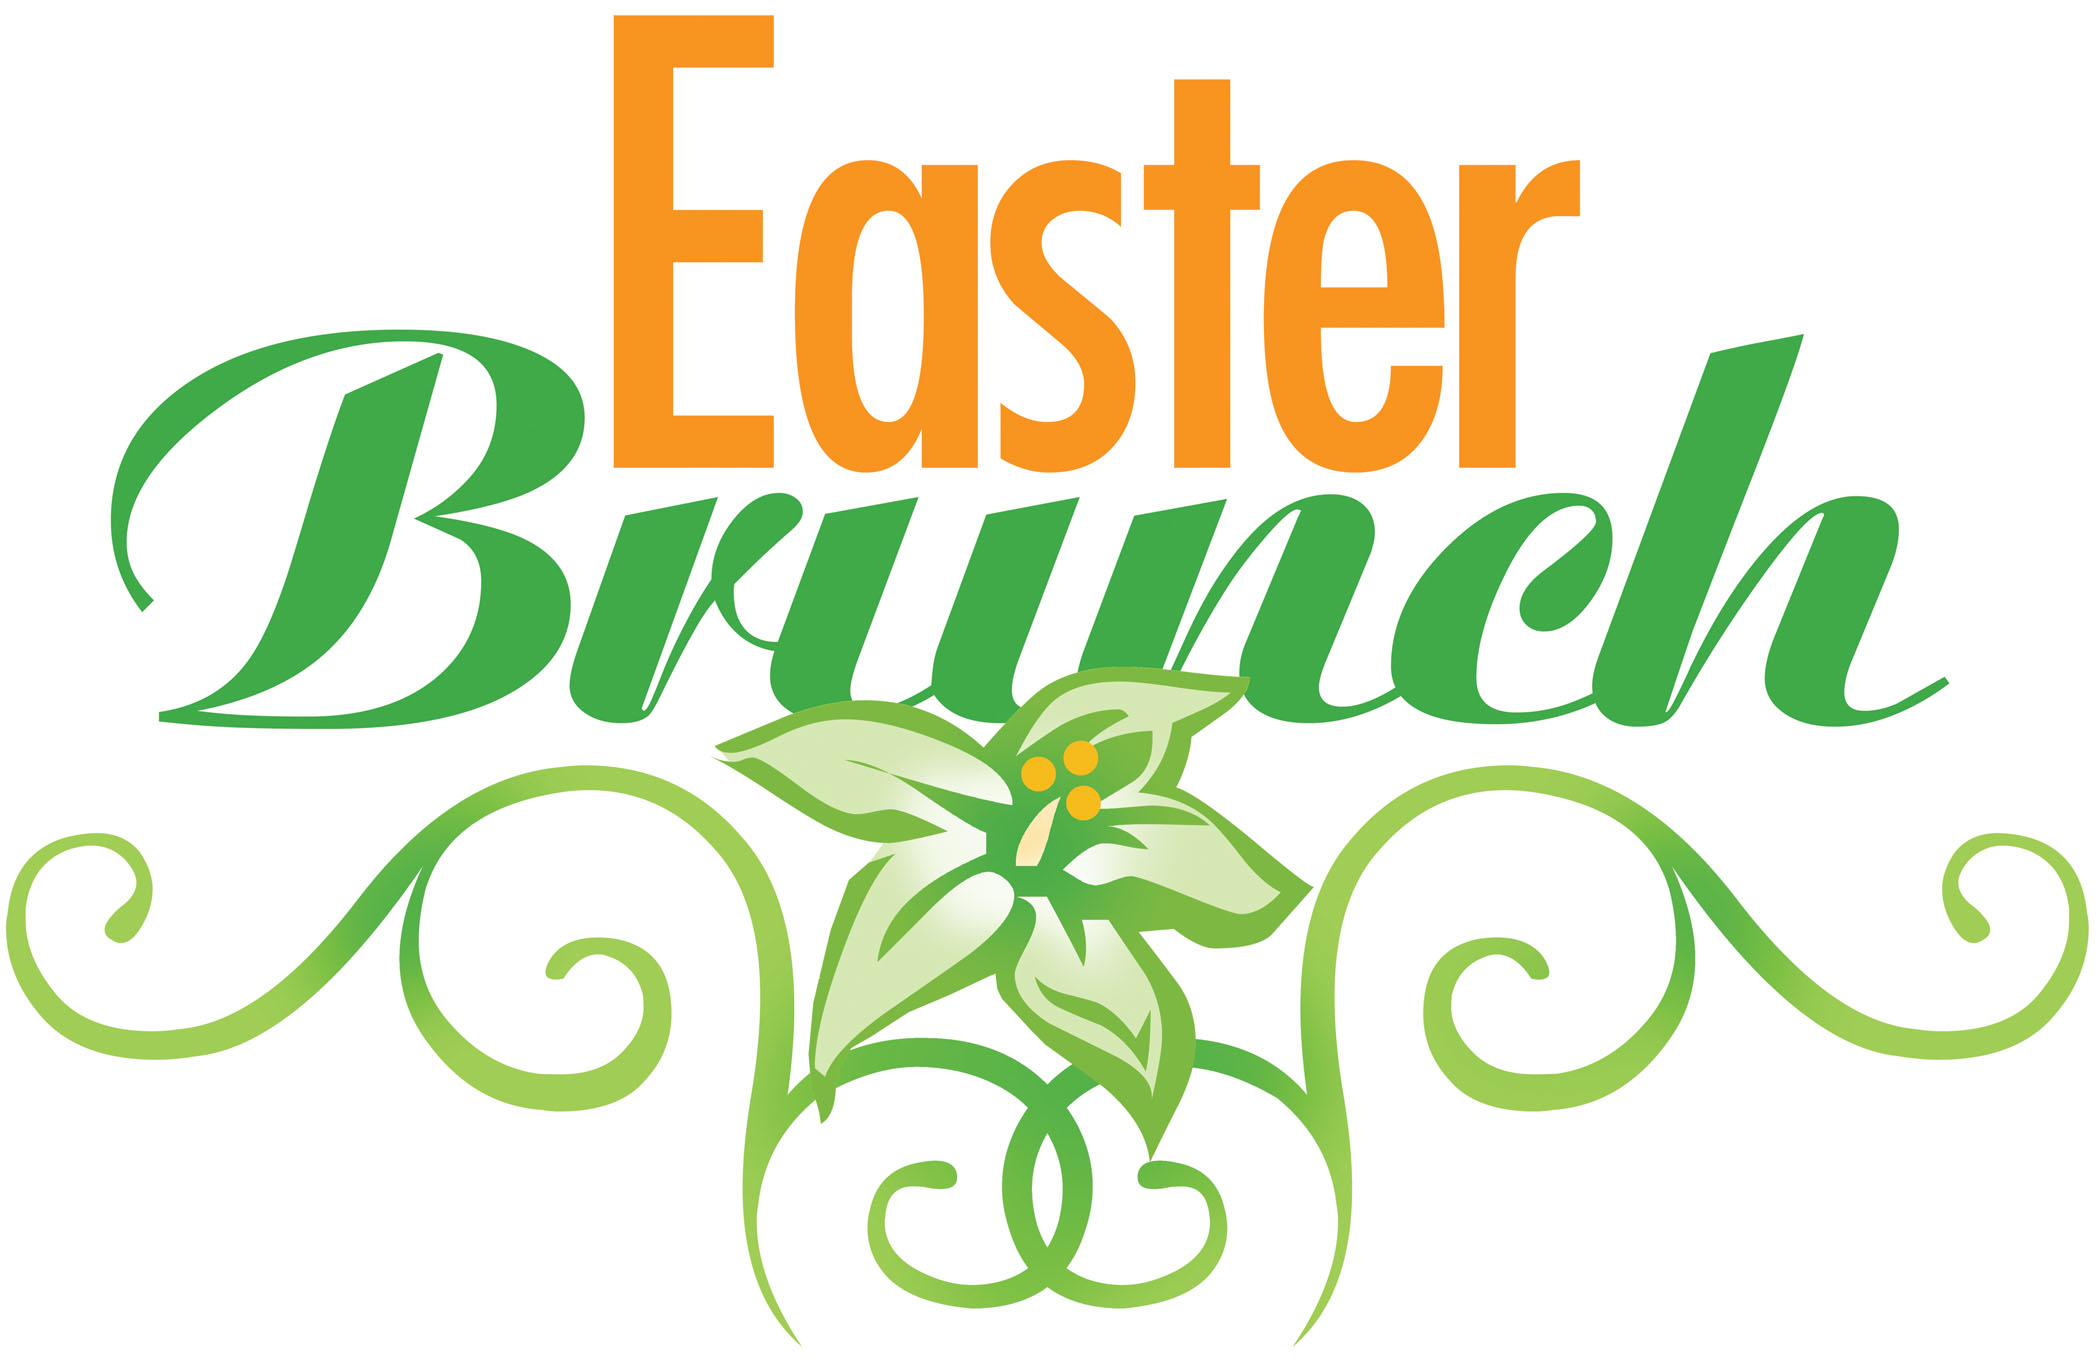 2100x1361 Breakfast Clipart Easter Breakfast